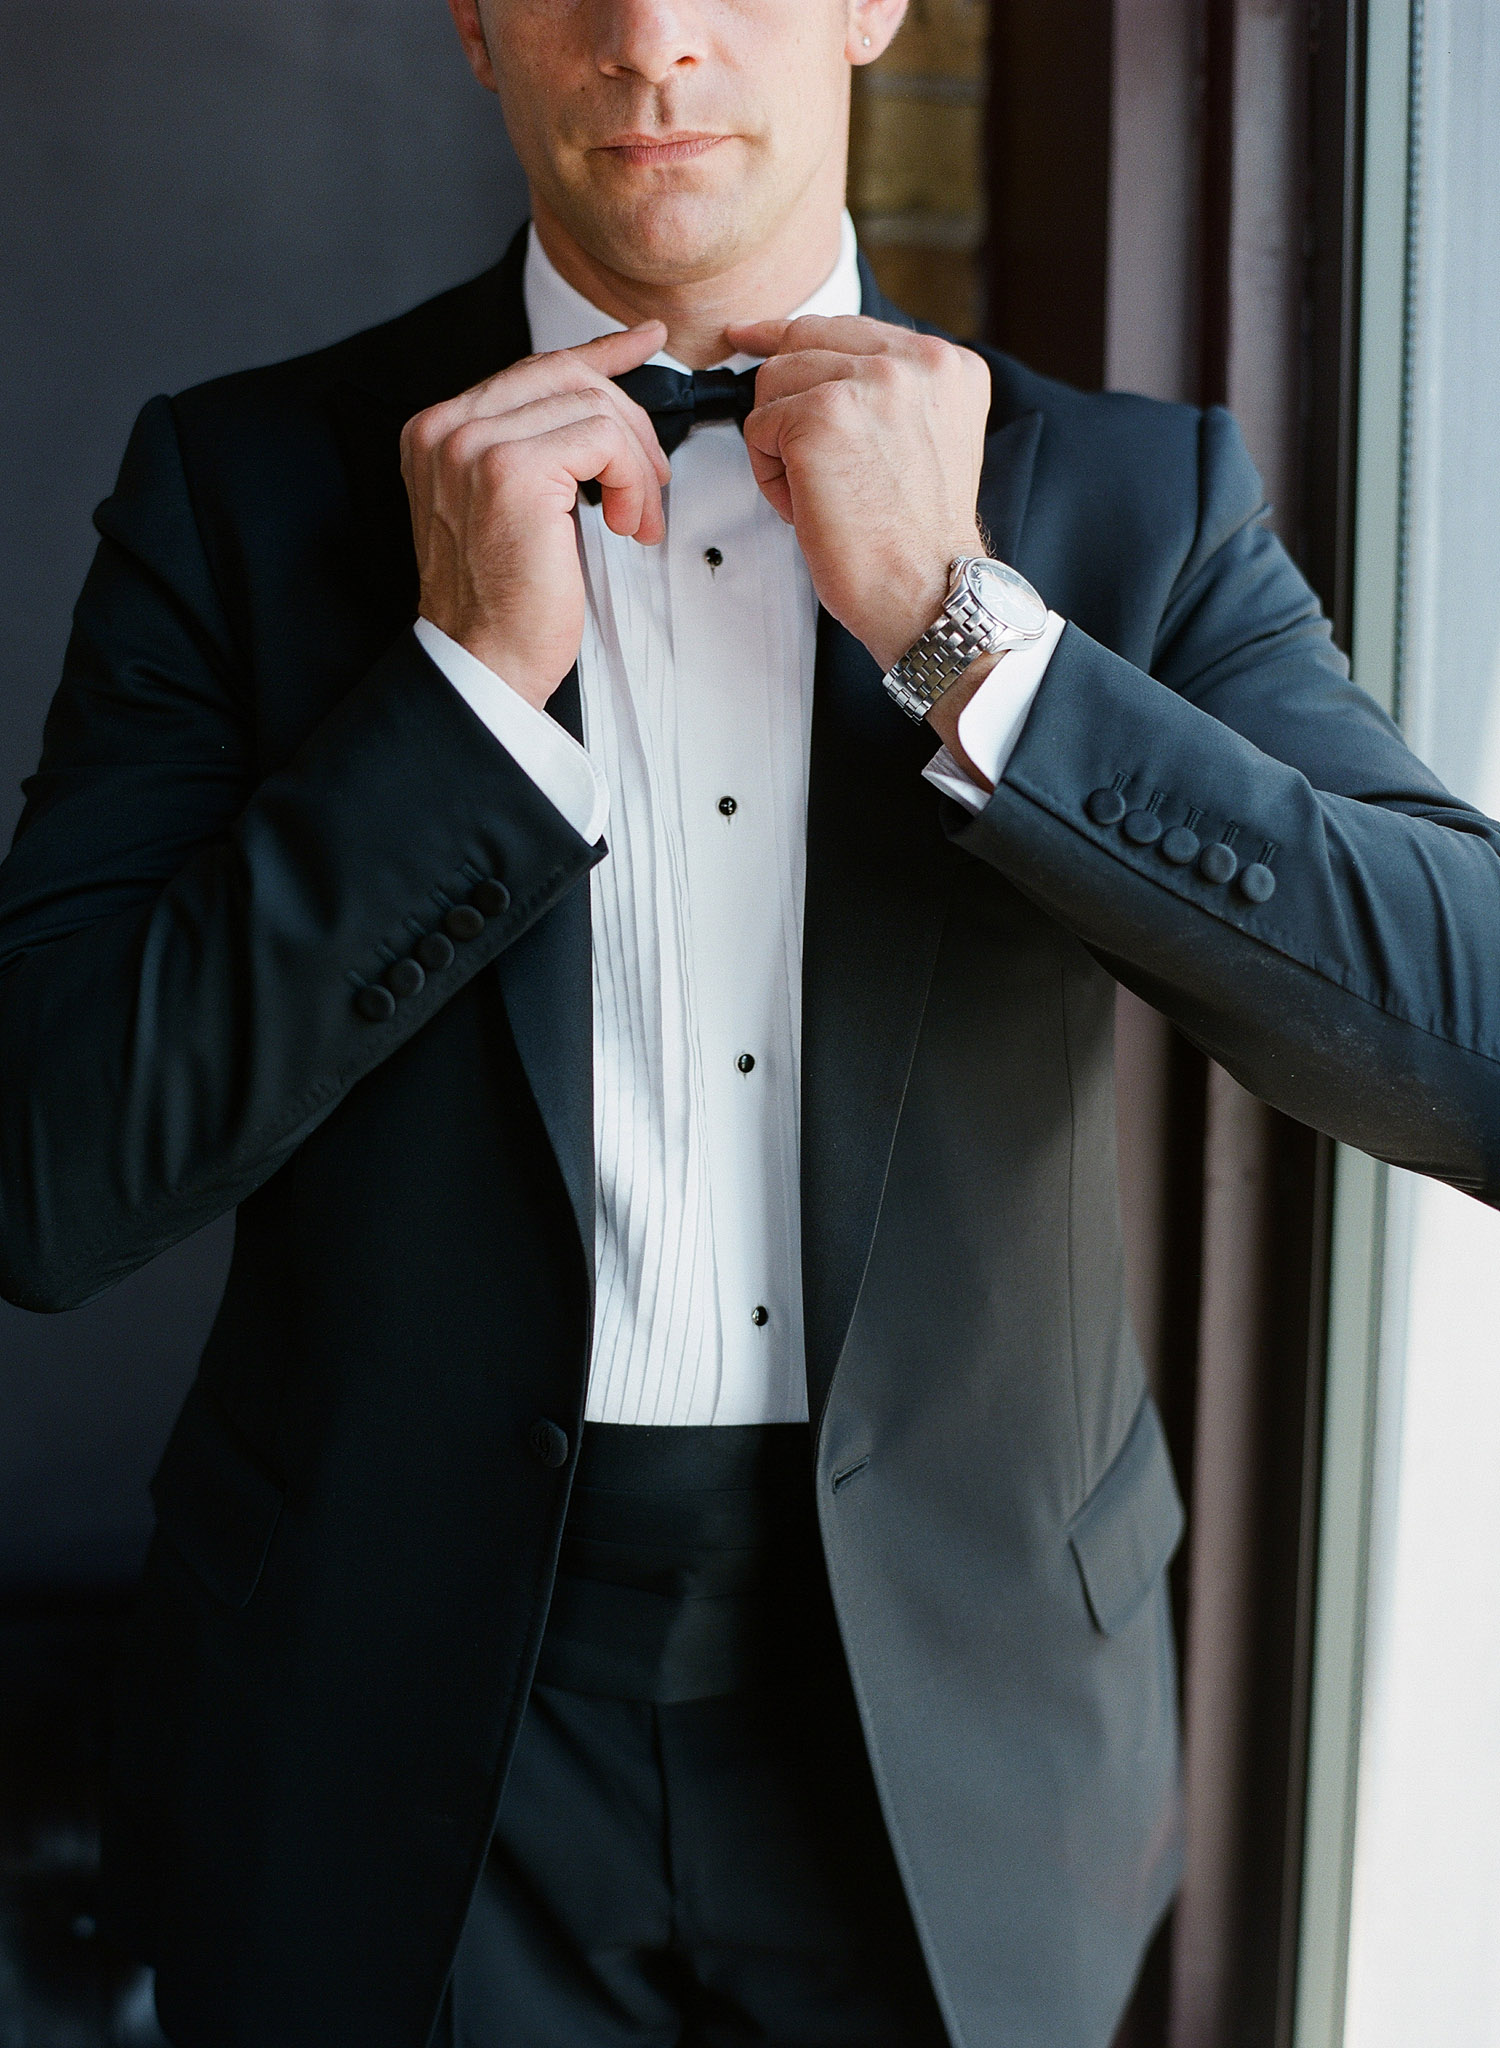 the groom adjusts his bowtie and awaits the ceremony at this beautiful italian villa wedding at the Villa Terrace where International destination wedding photographer, LExia Frank photographs the wedding on film